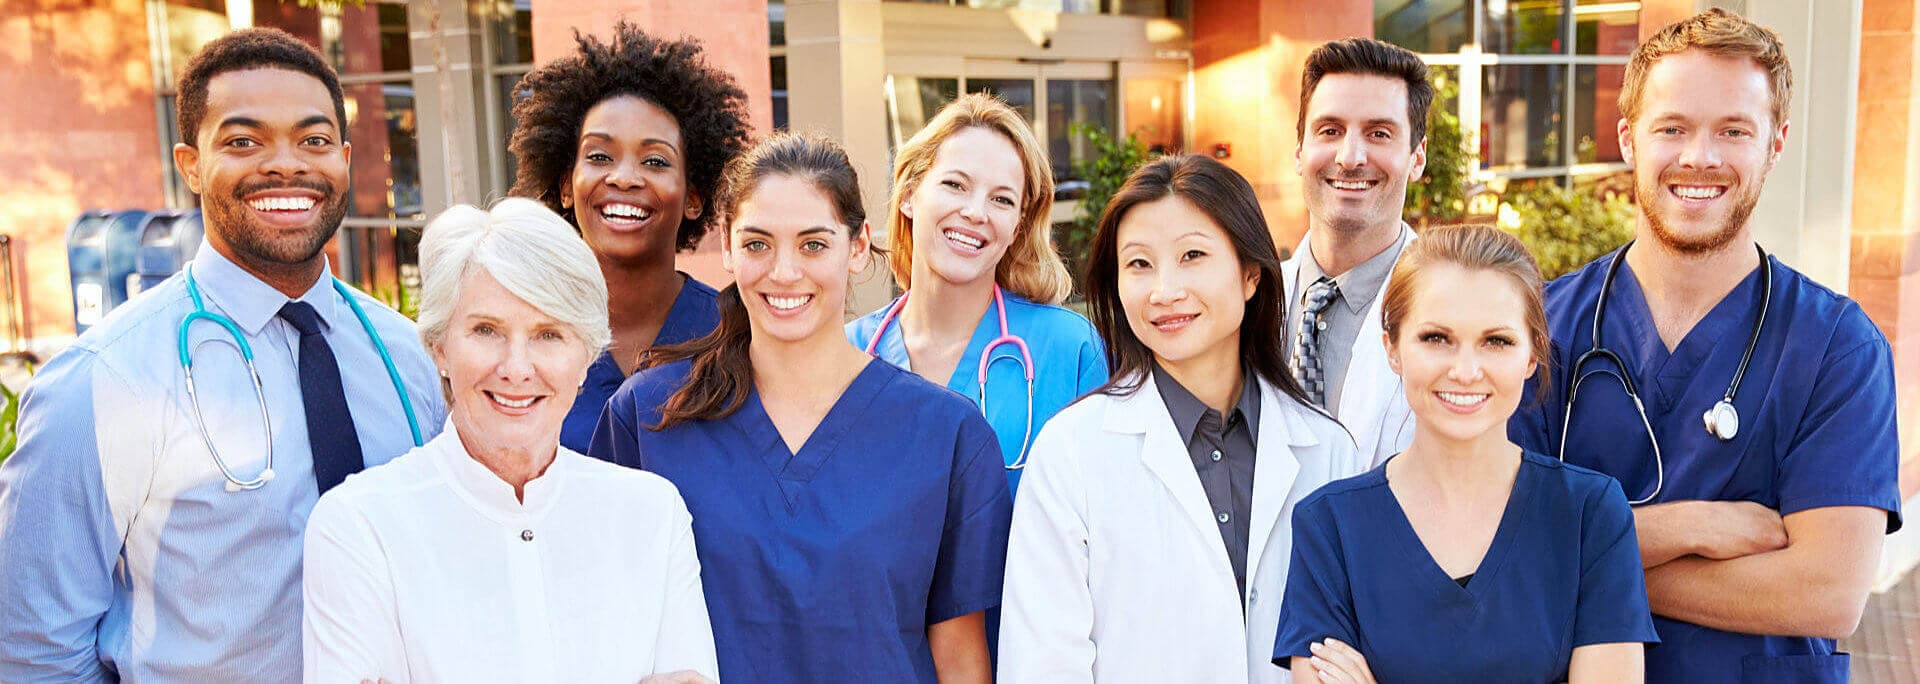 group of nurse and doctors